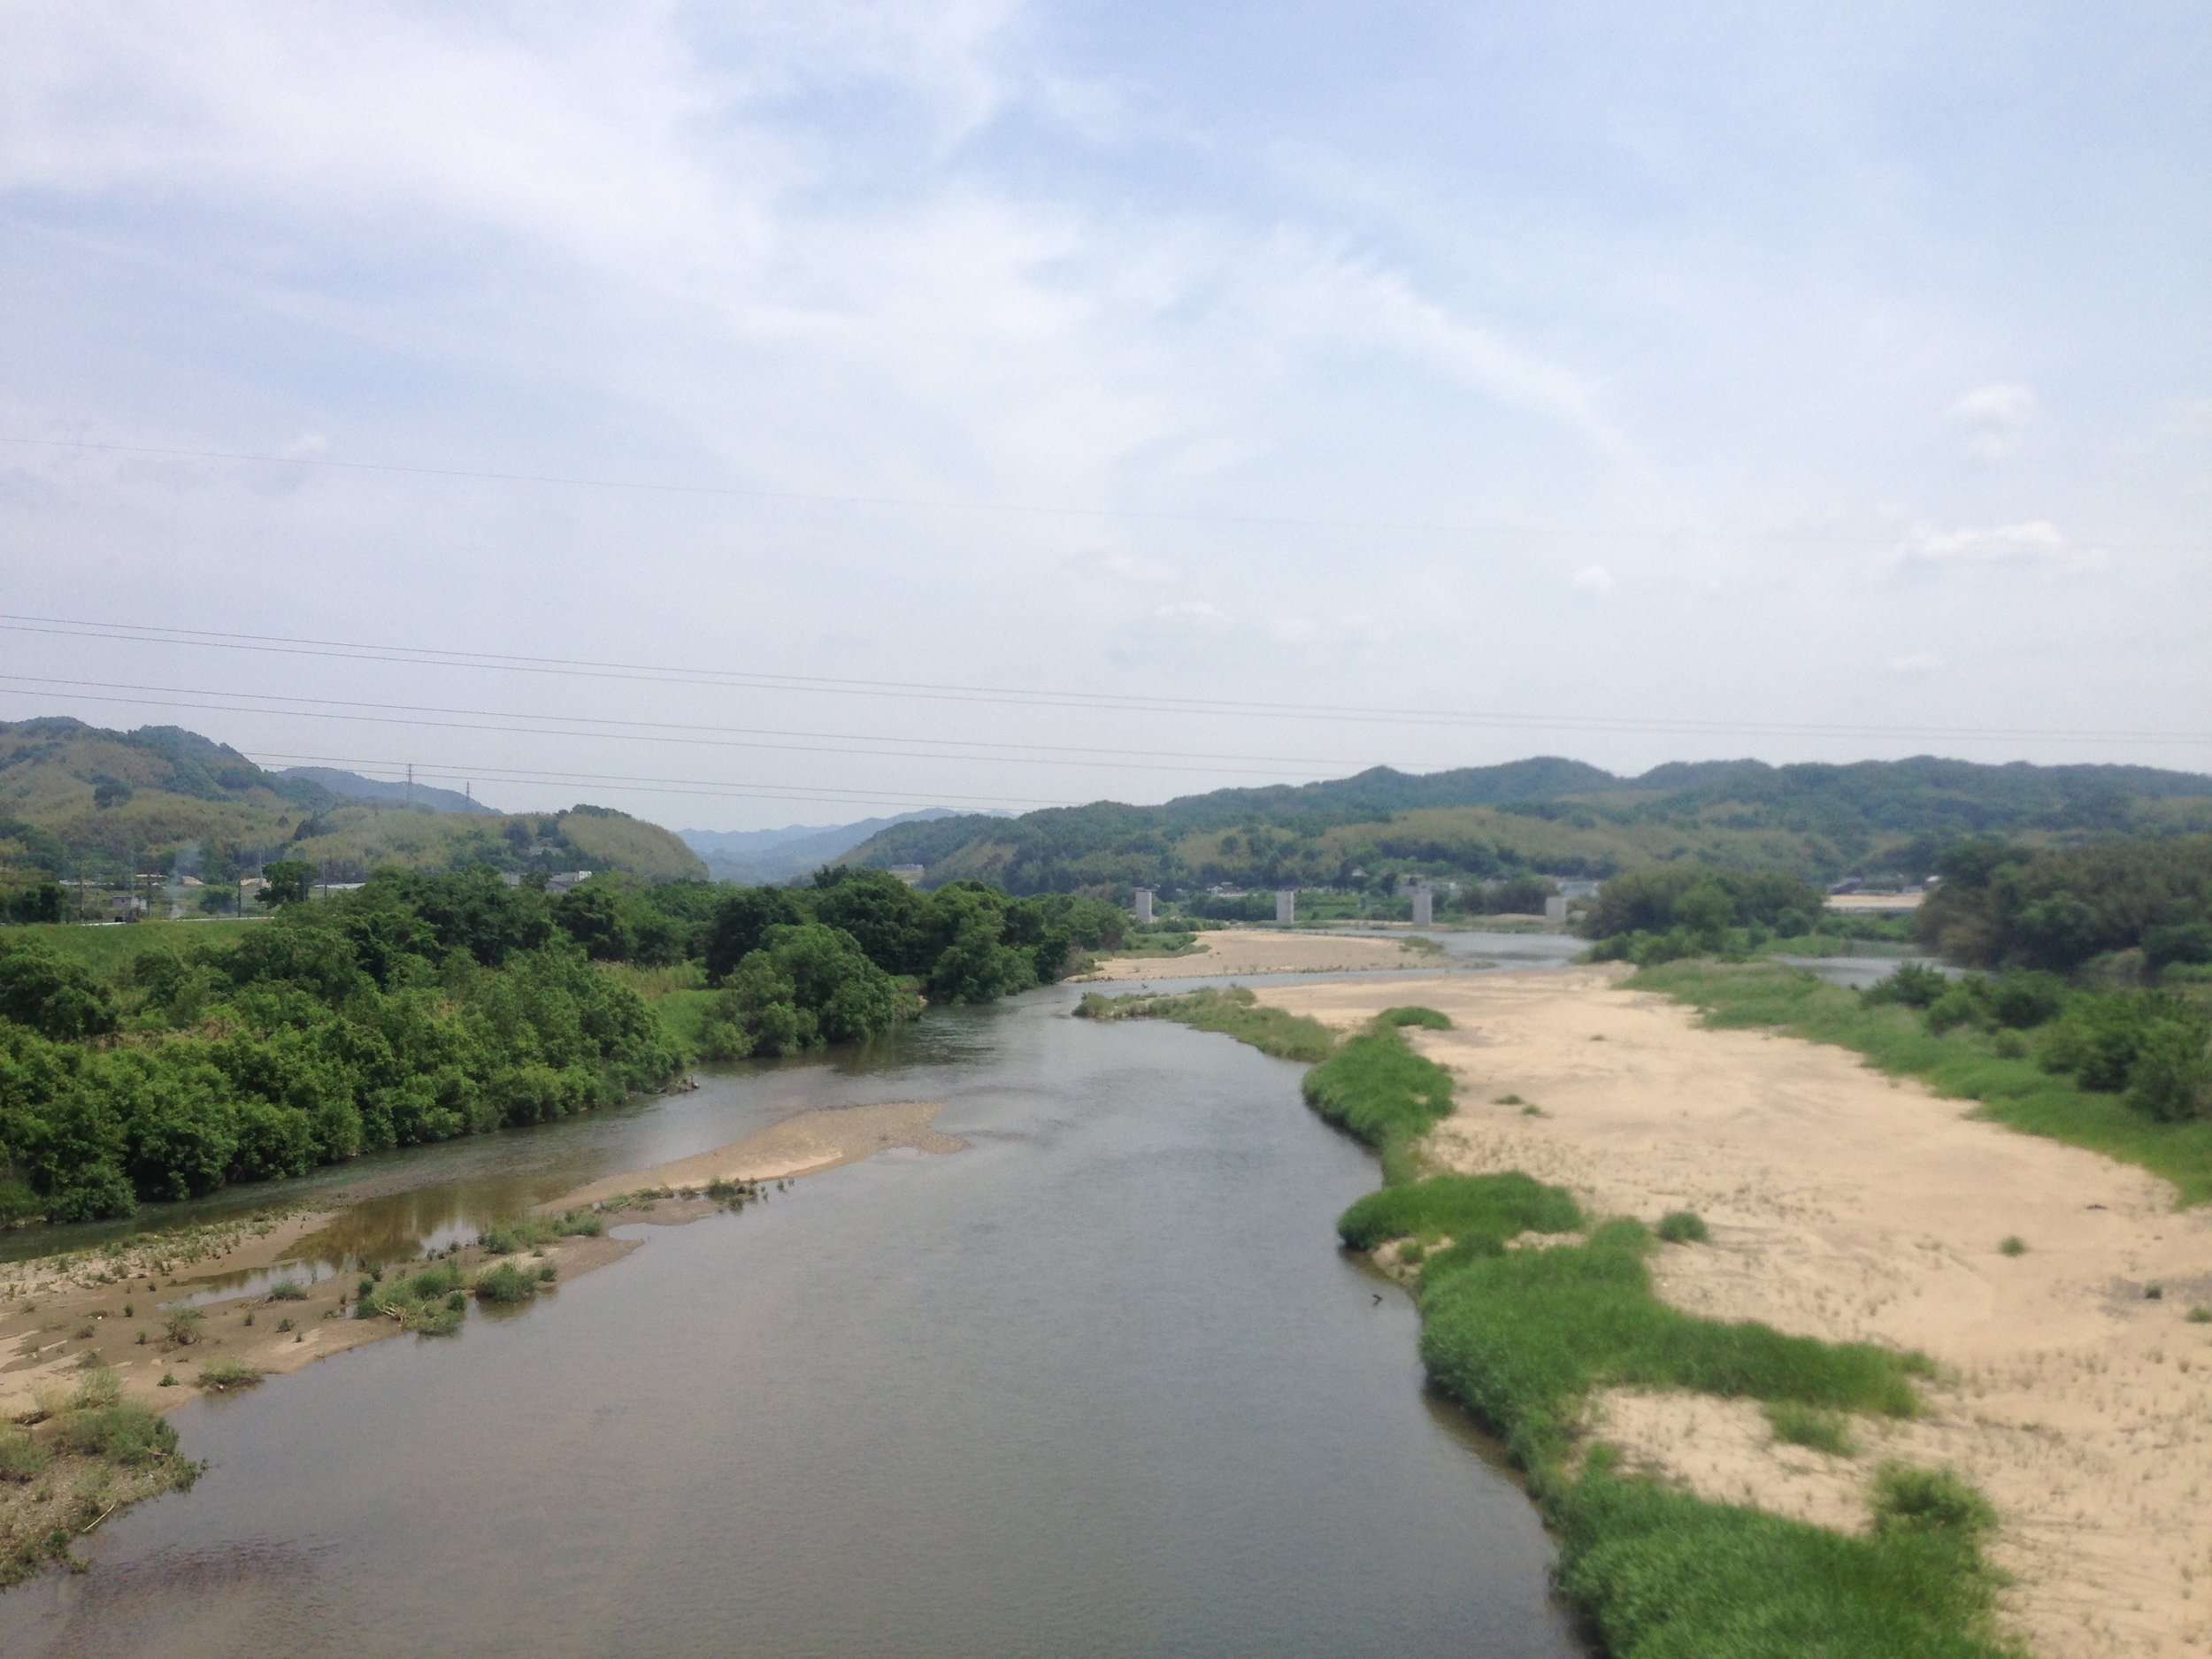 Somewhere in between Nara and Kyoto.